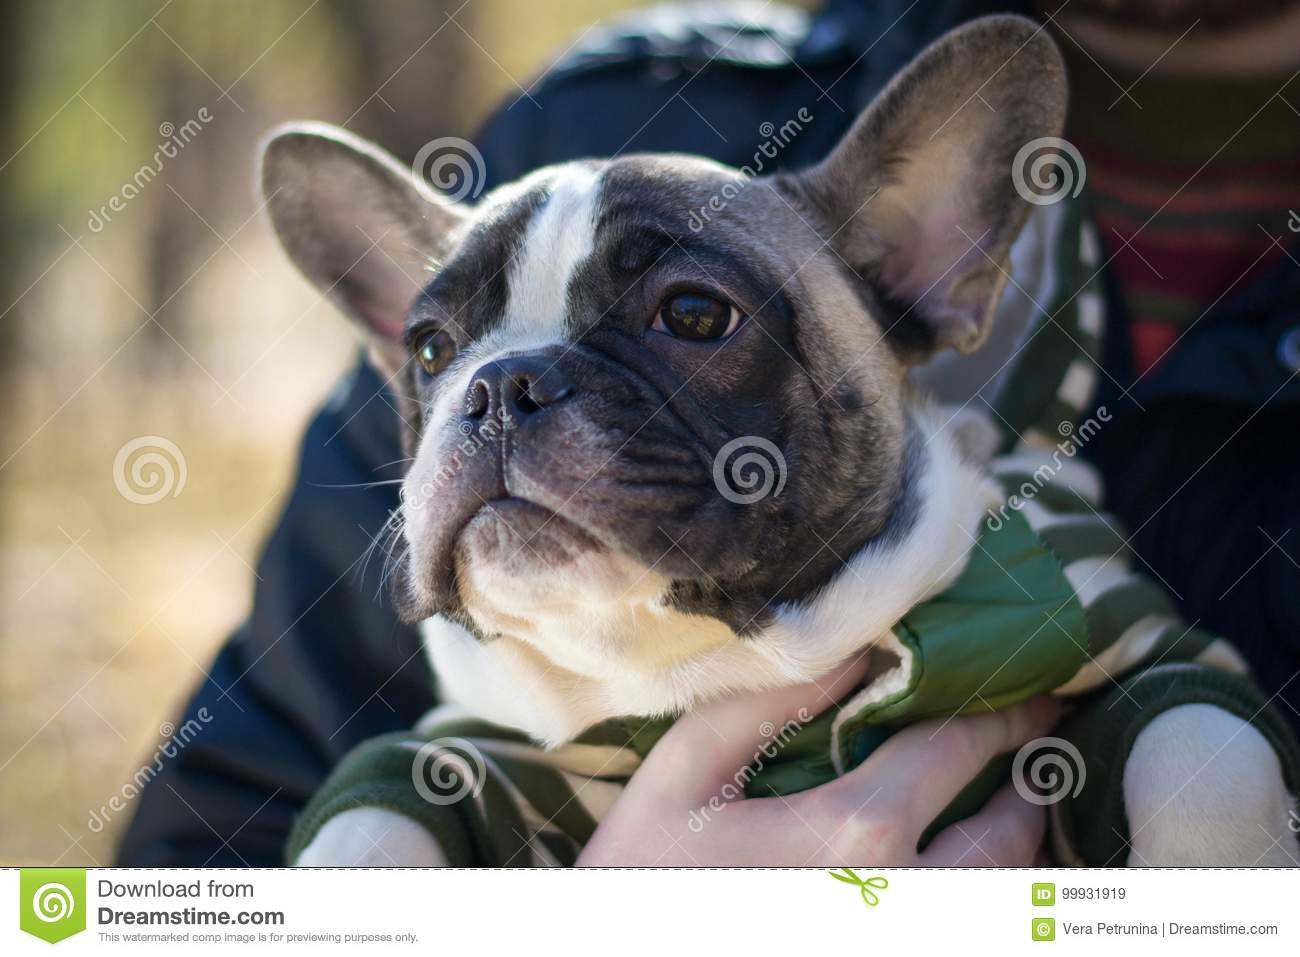 Cute Puppy French Bulldog Sitting In Hands Stock Image Image Of